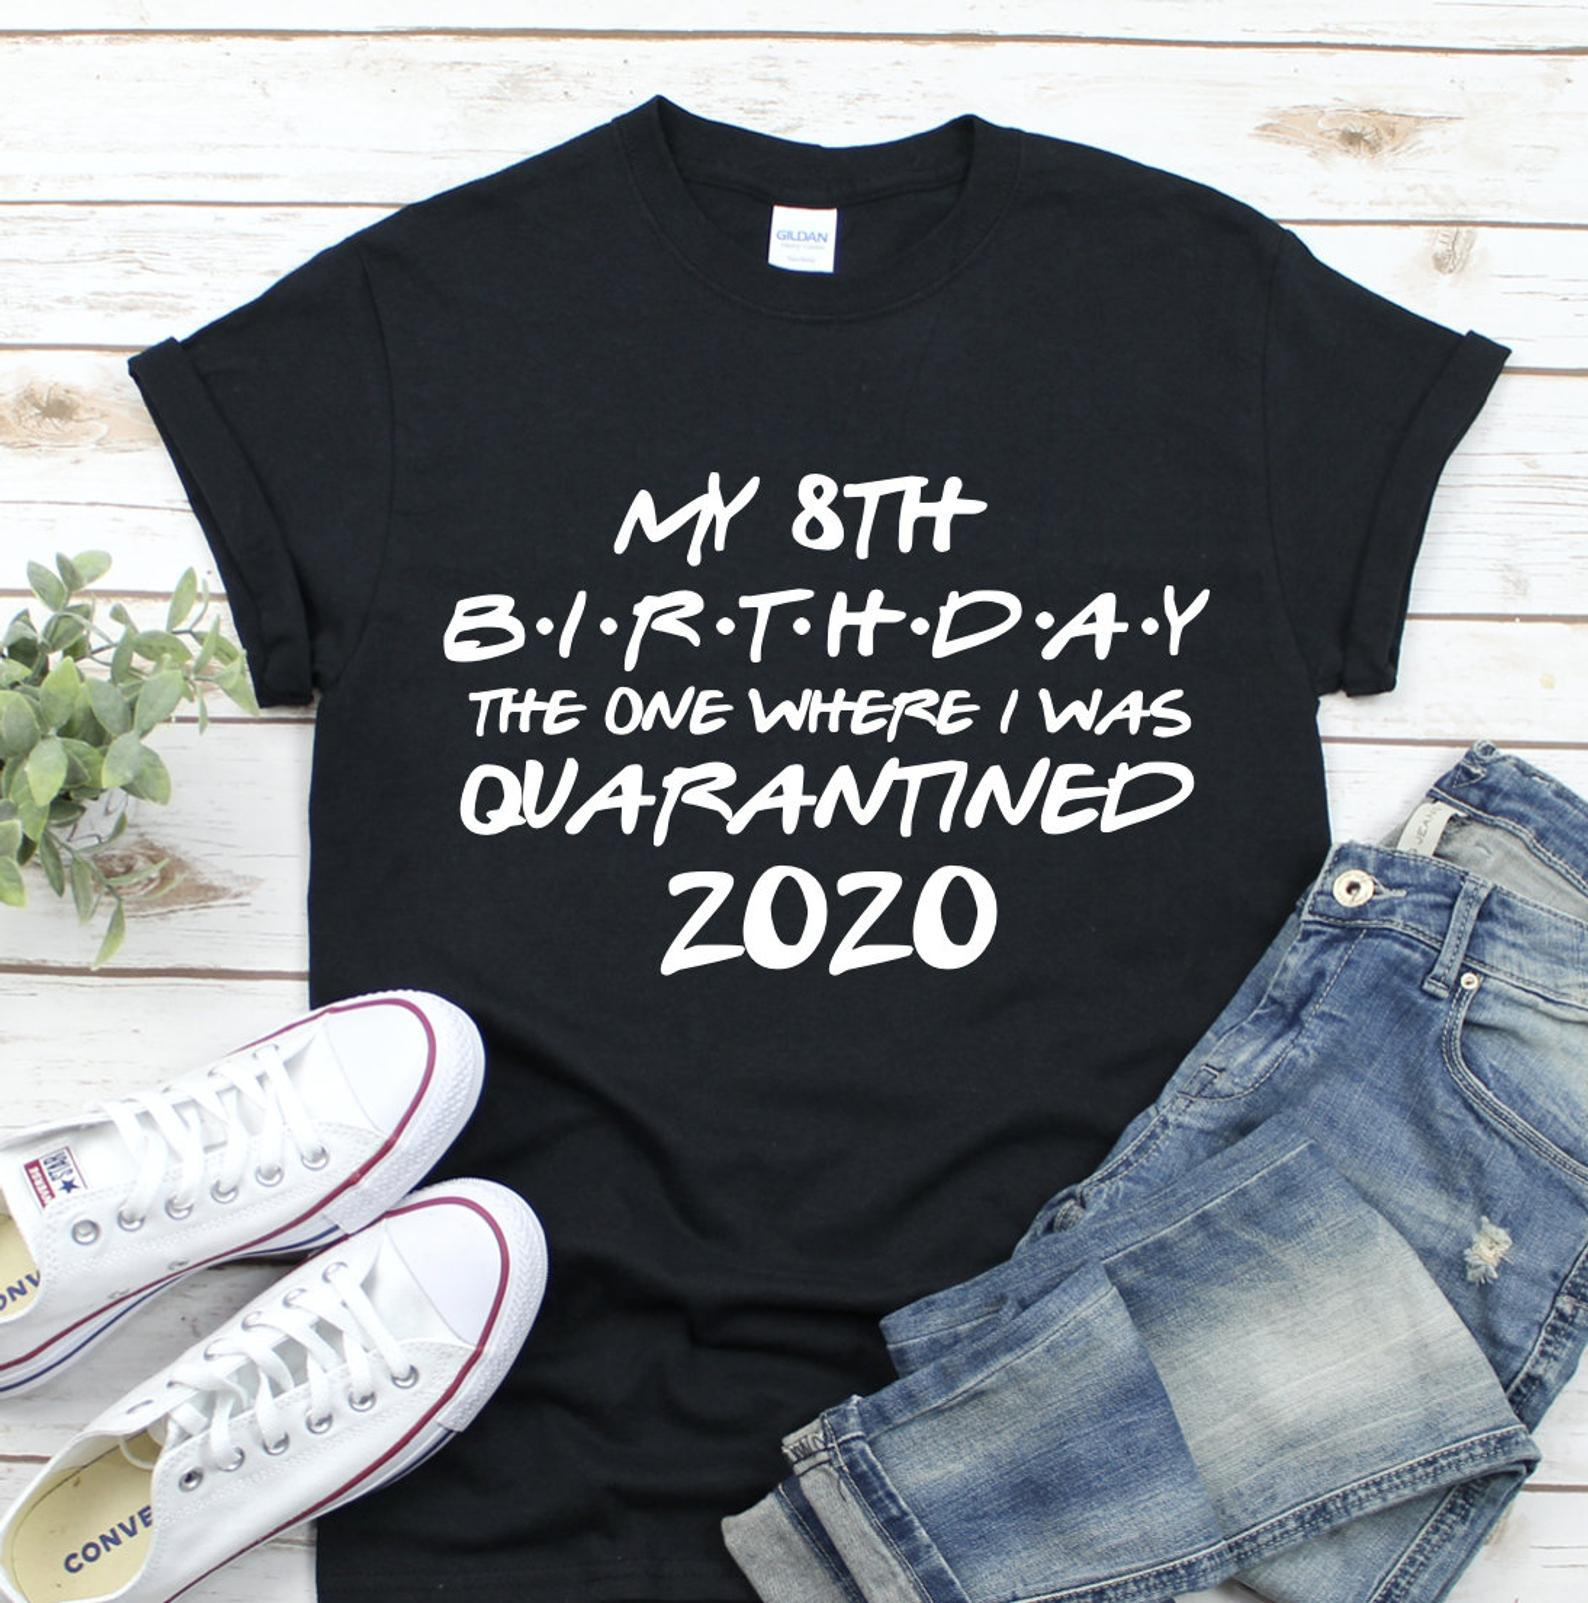 100% Pure Cotton T Shirt My <font><b>8th</b></font> <font><b>Birthday</b></font> Letter Print Women Short Sleeve O Neck Loose Tshirt 2020 Summer Tee Shirt Tops Mujer image